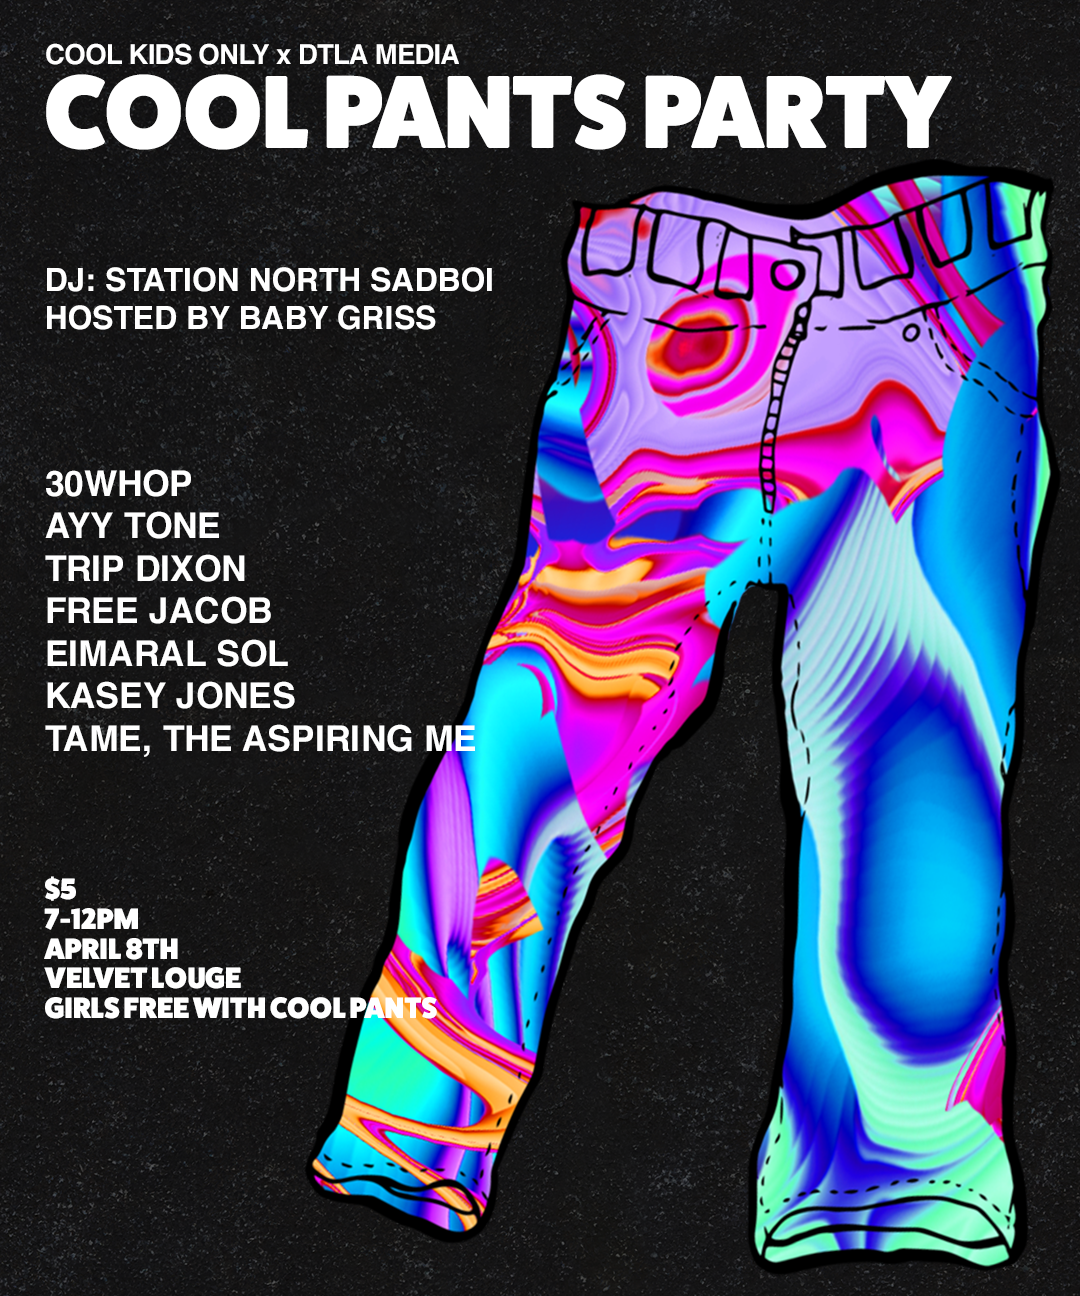 cool pants party flyer 2.png